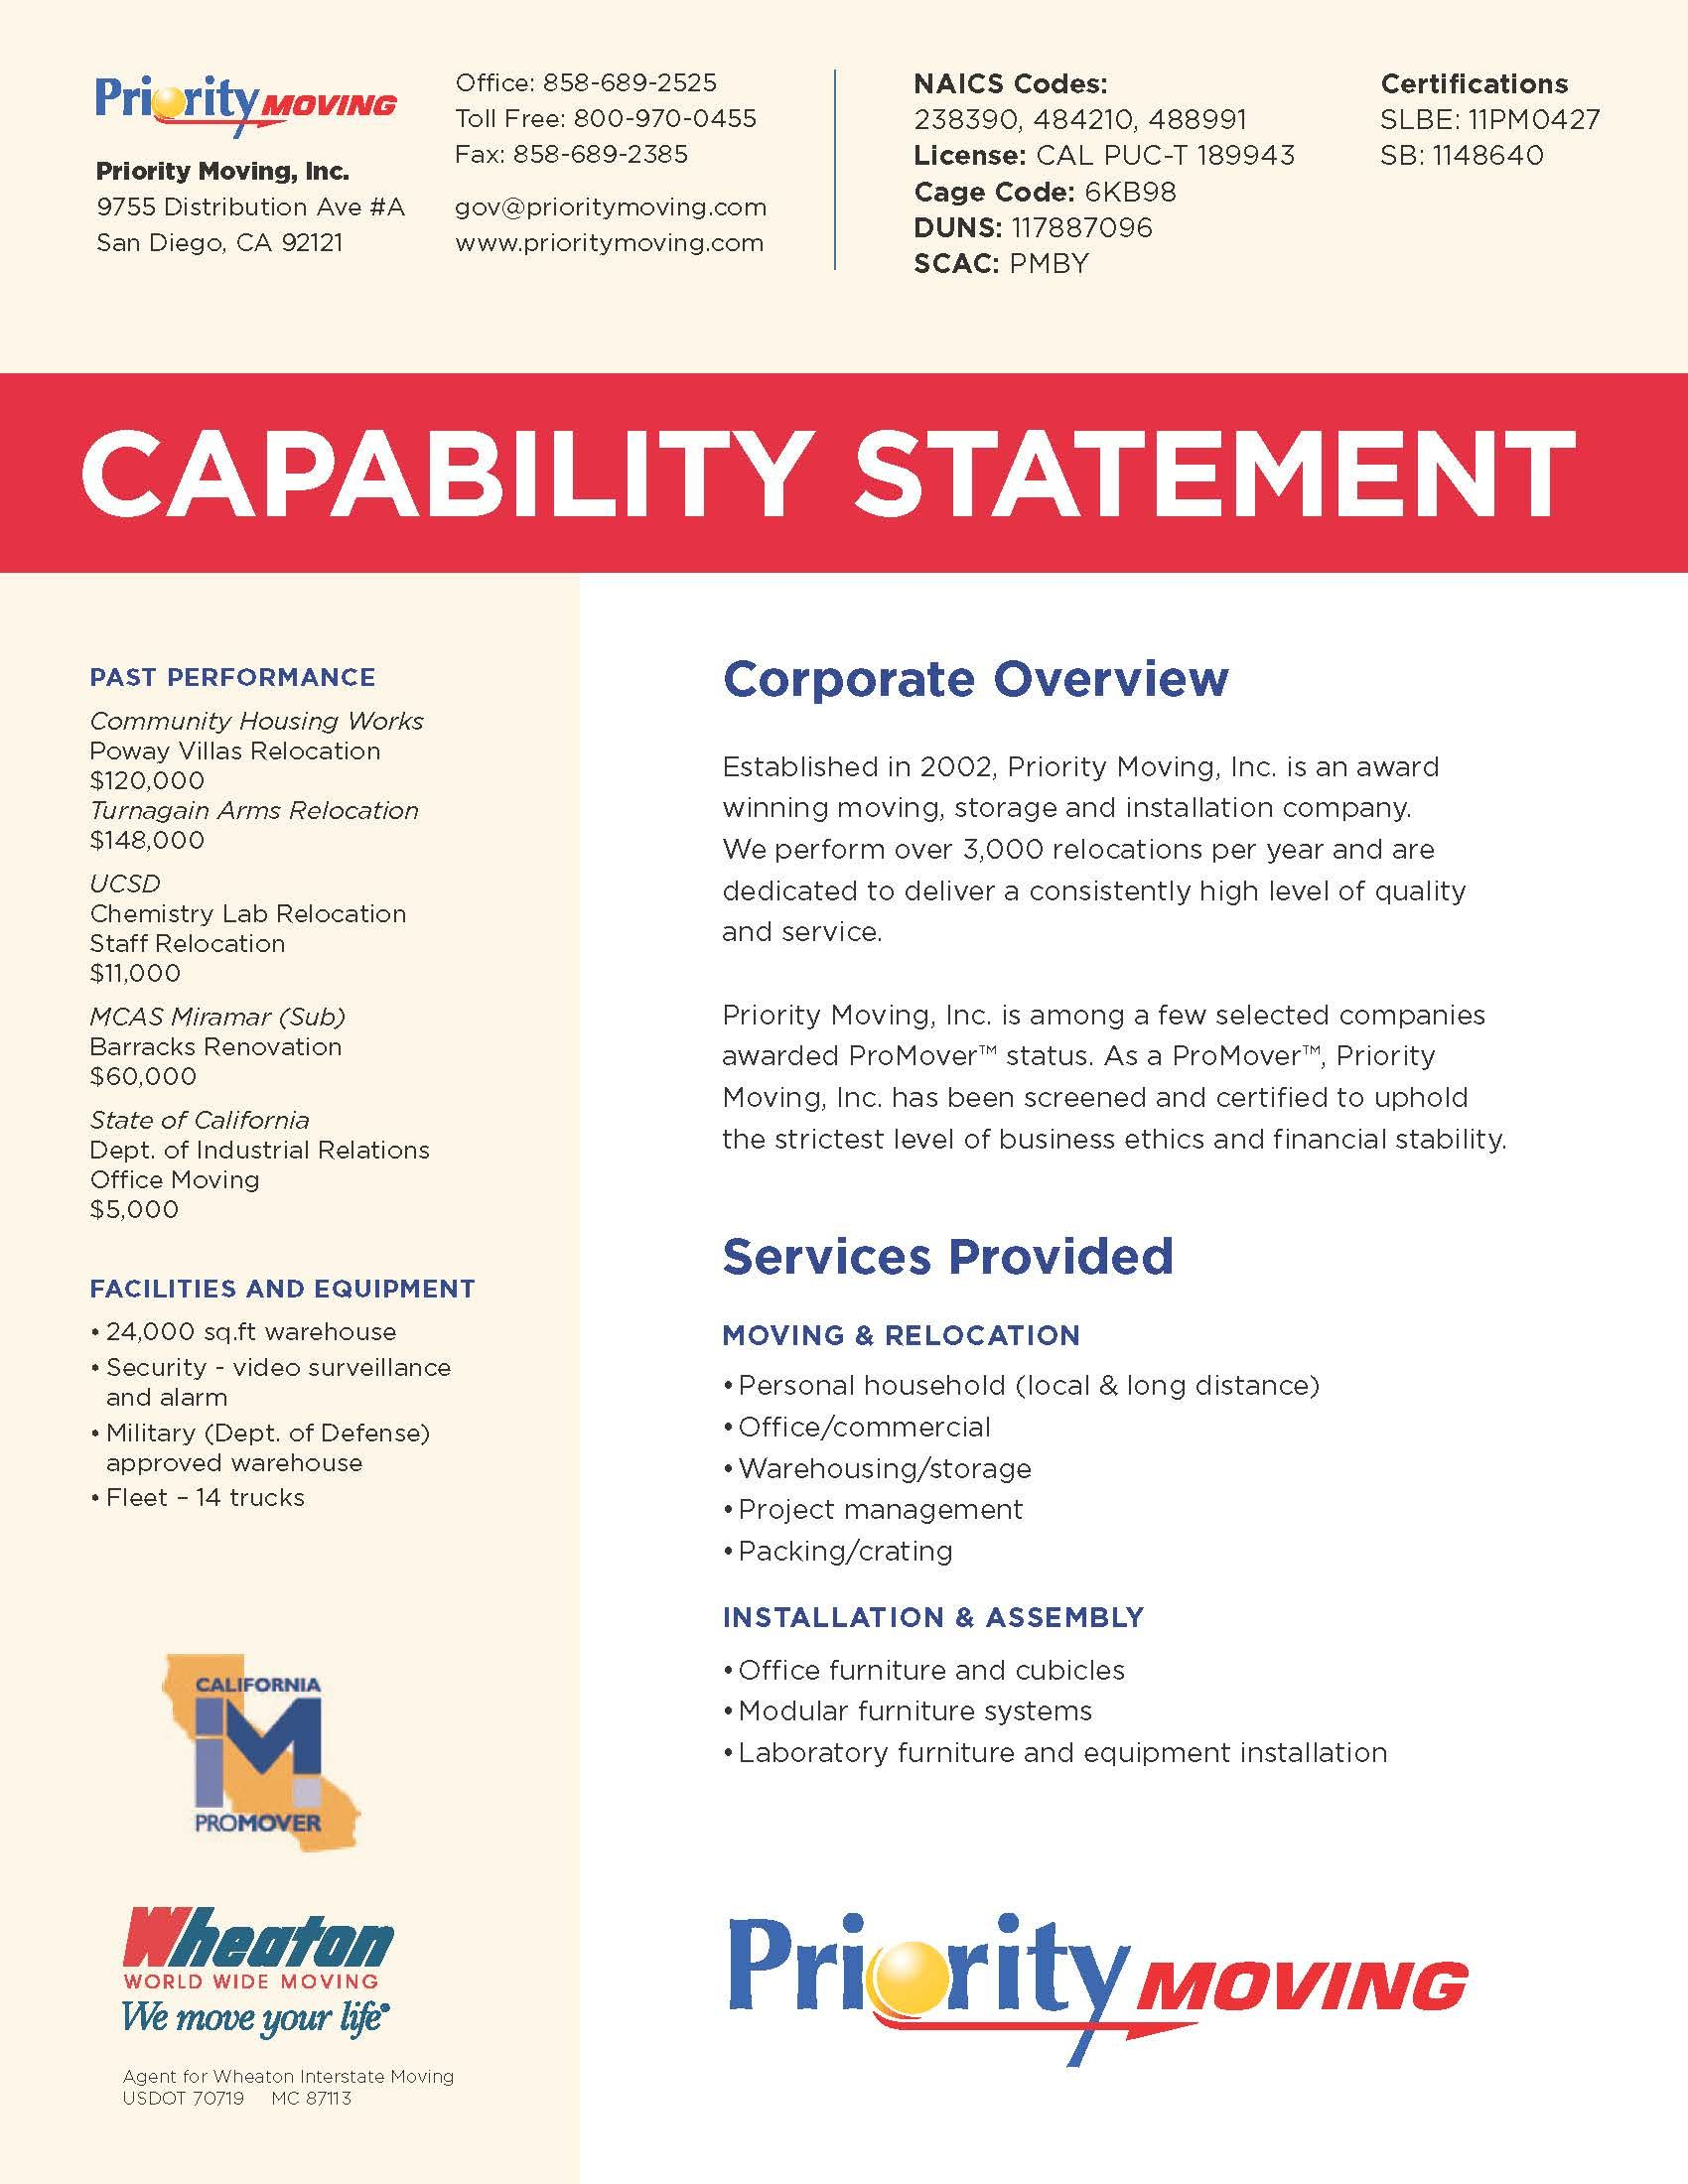 Capability Statement Statement Template Word Template Pamphlet